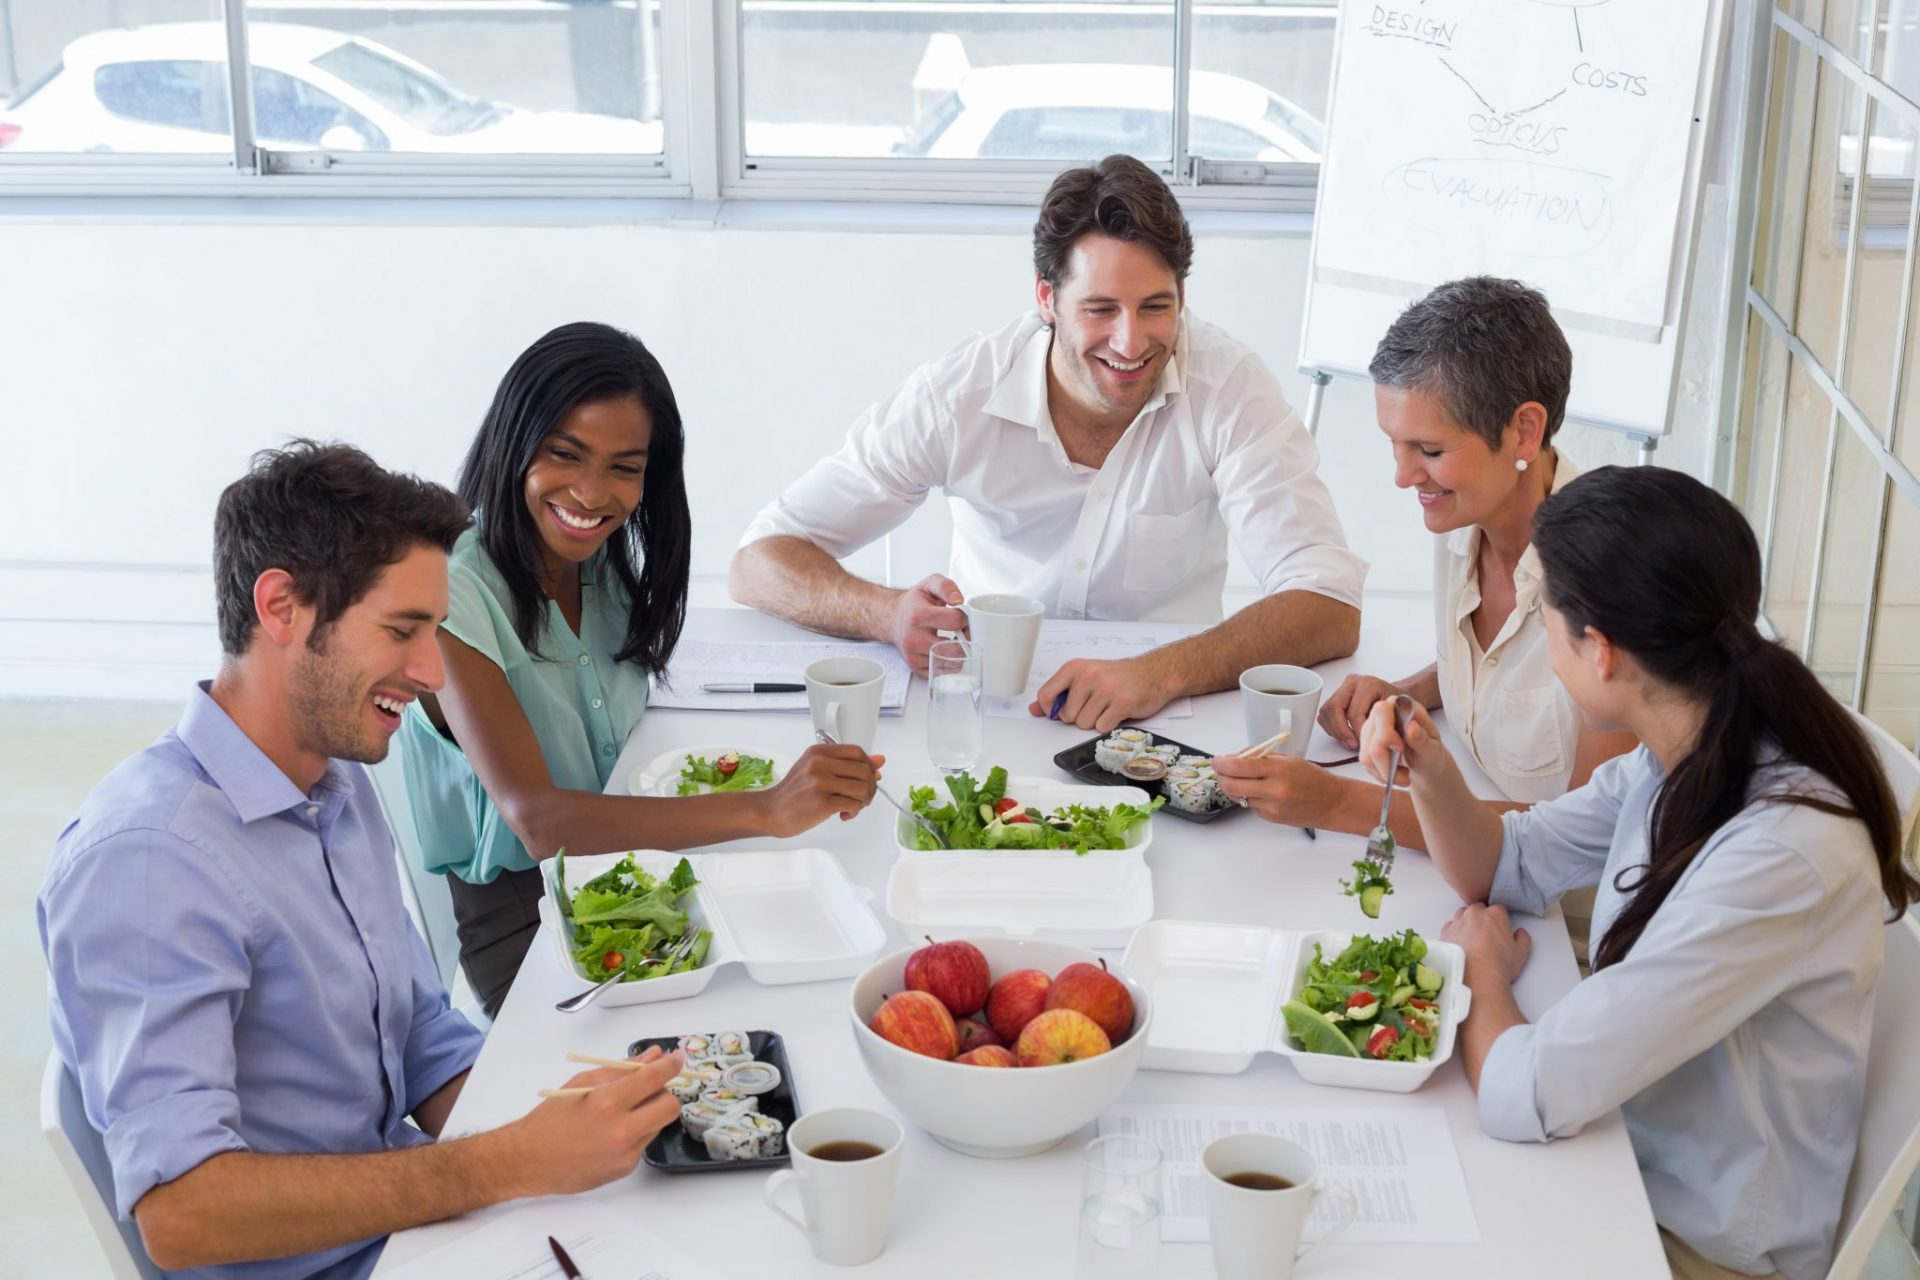 How US Employers Successfully Provide Access to Healthier Food Choices